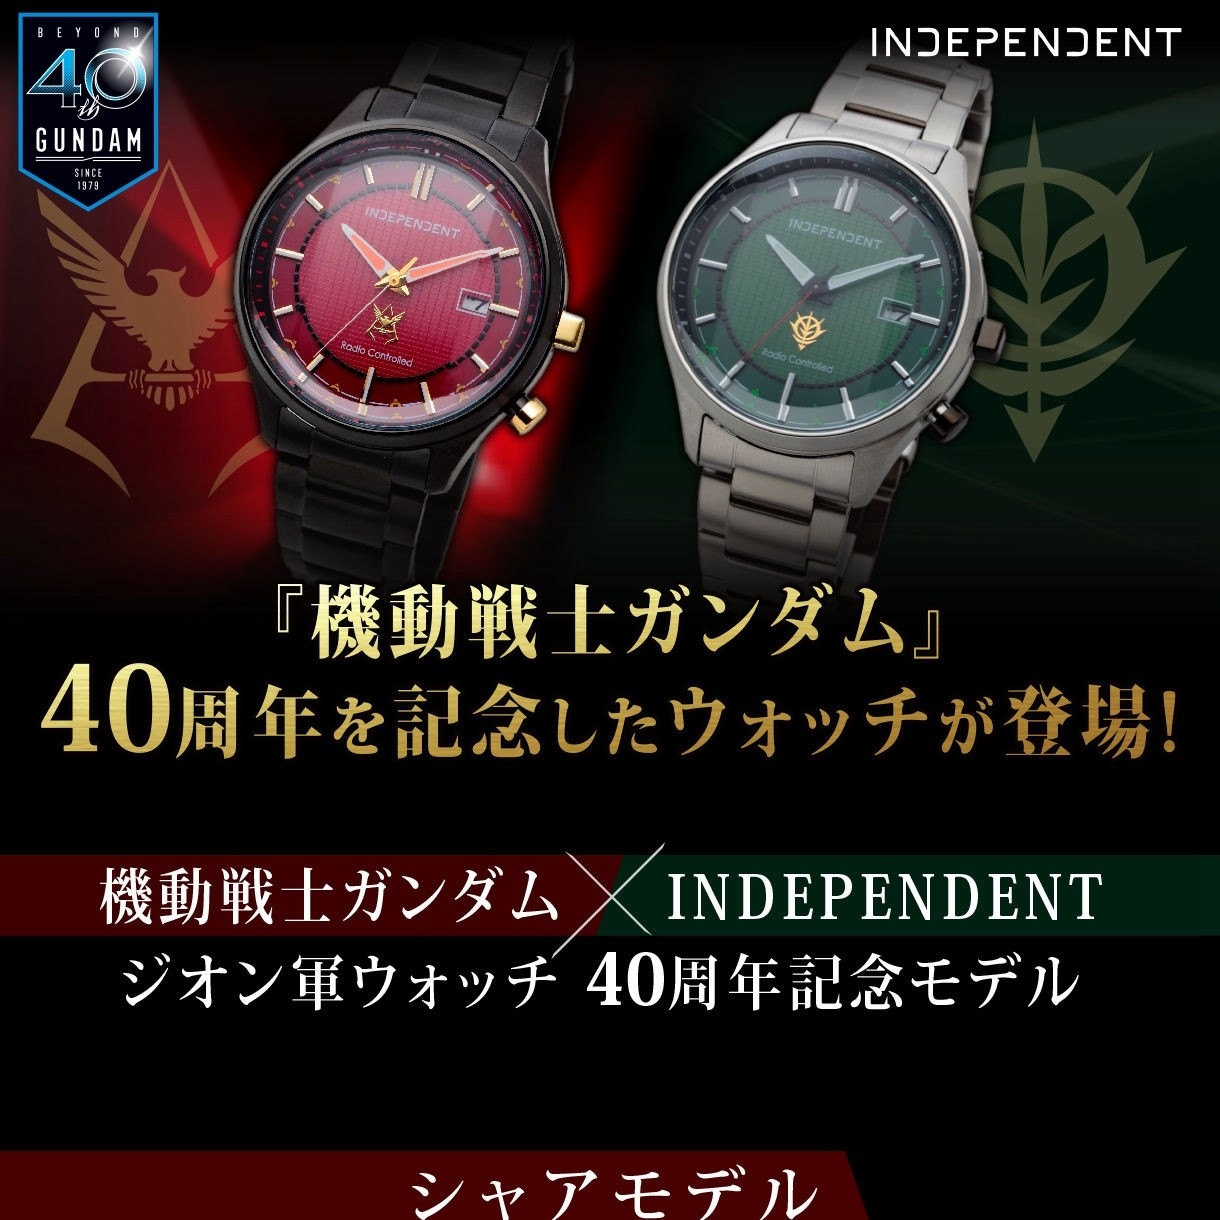 B6WRノート GS2 ジオン軍, Char Aznable, Font, Computer font, Text, Principality of Zeon, Wallpaper, シャア 壁紙, Analog watch, Watch, Font, Product, Watch accessory, Brand, Fashion accessory, Material property, Quartz clock, Strap